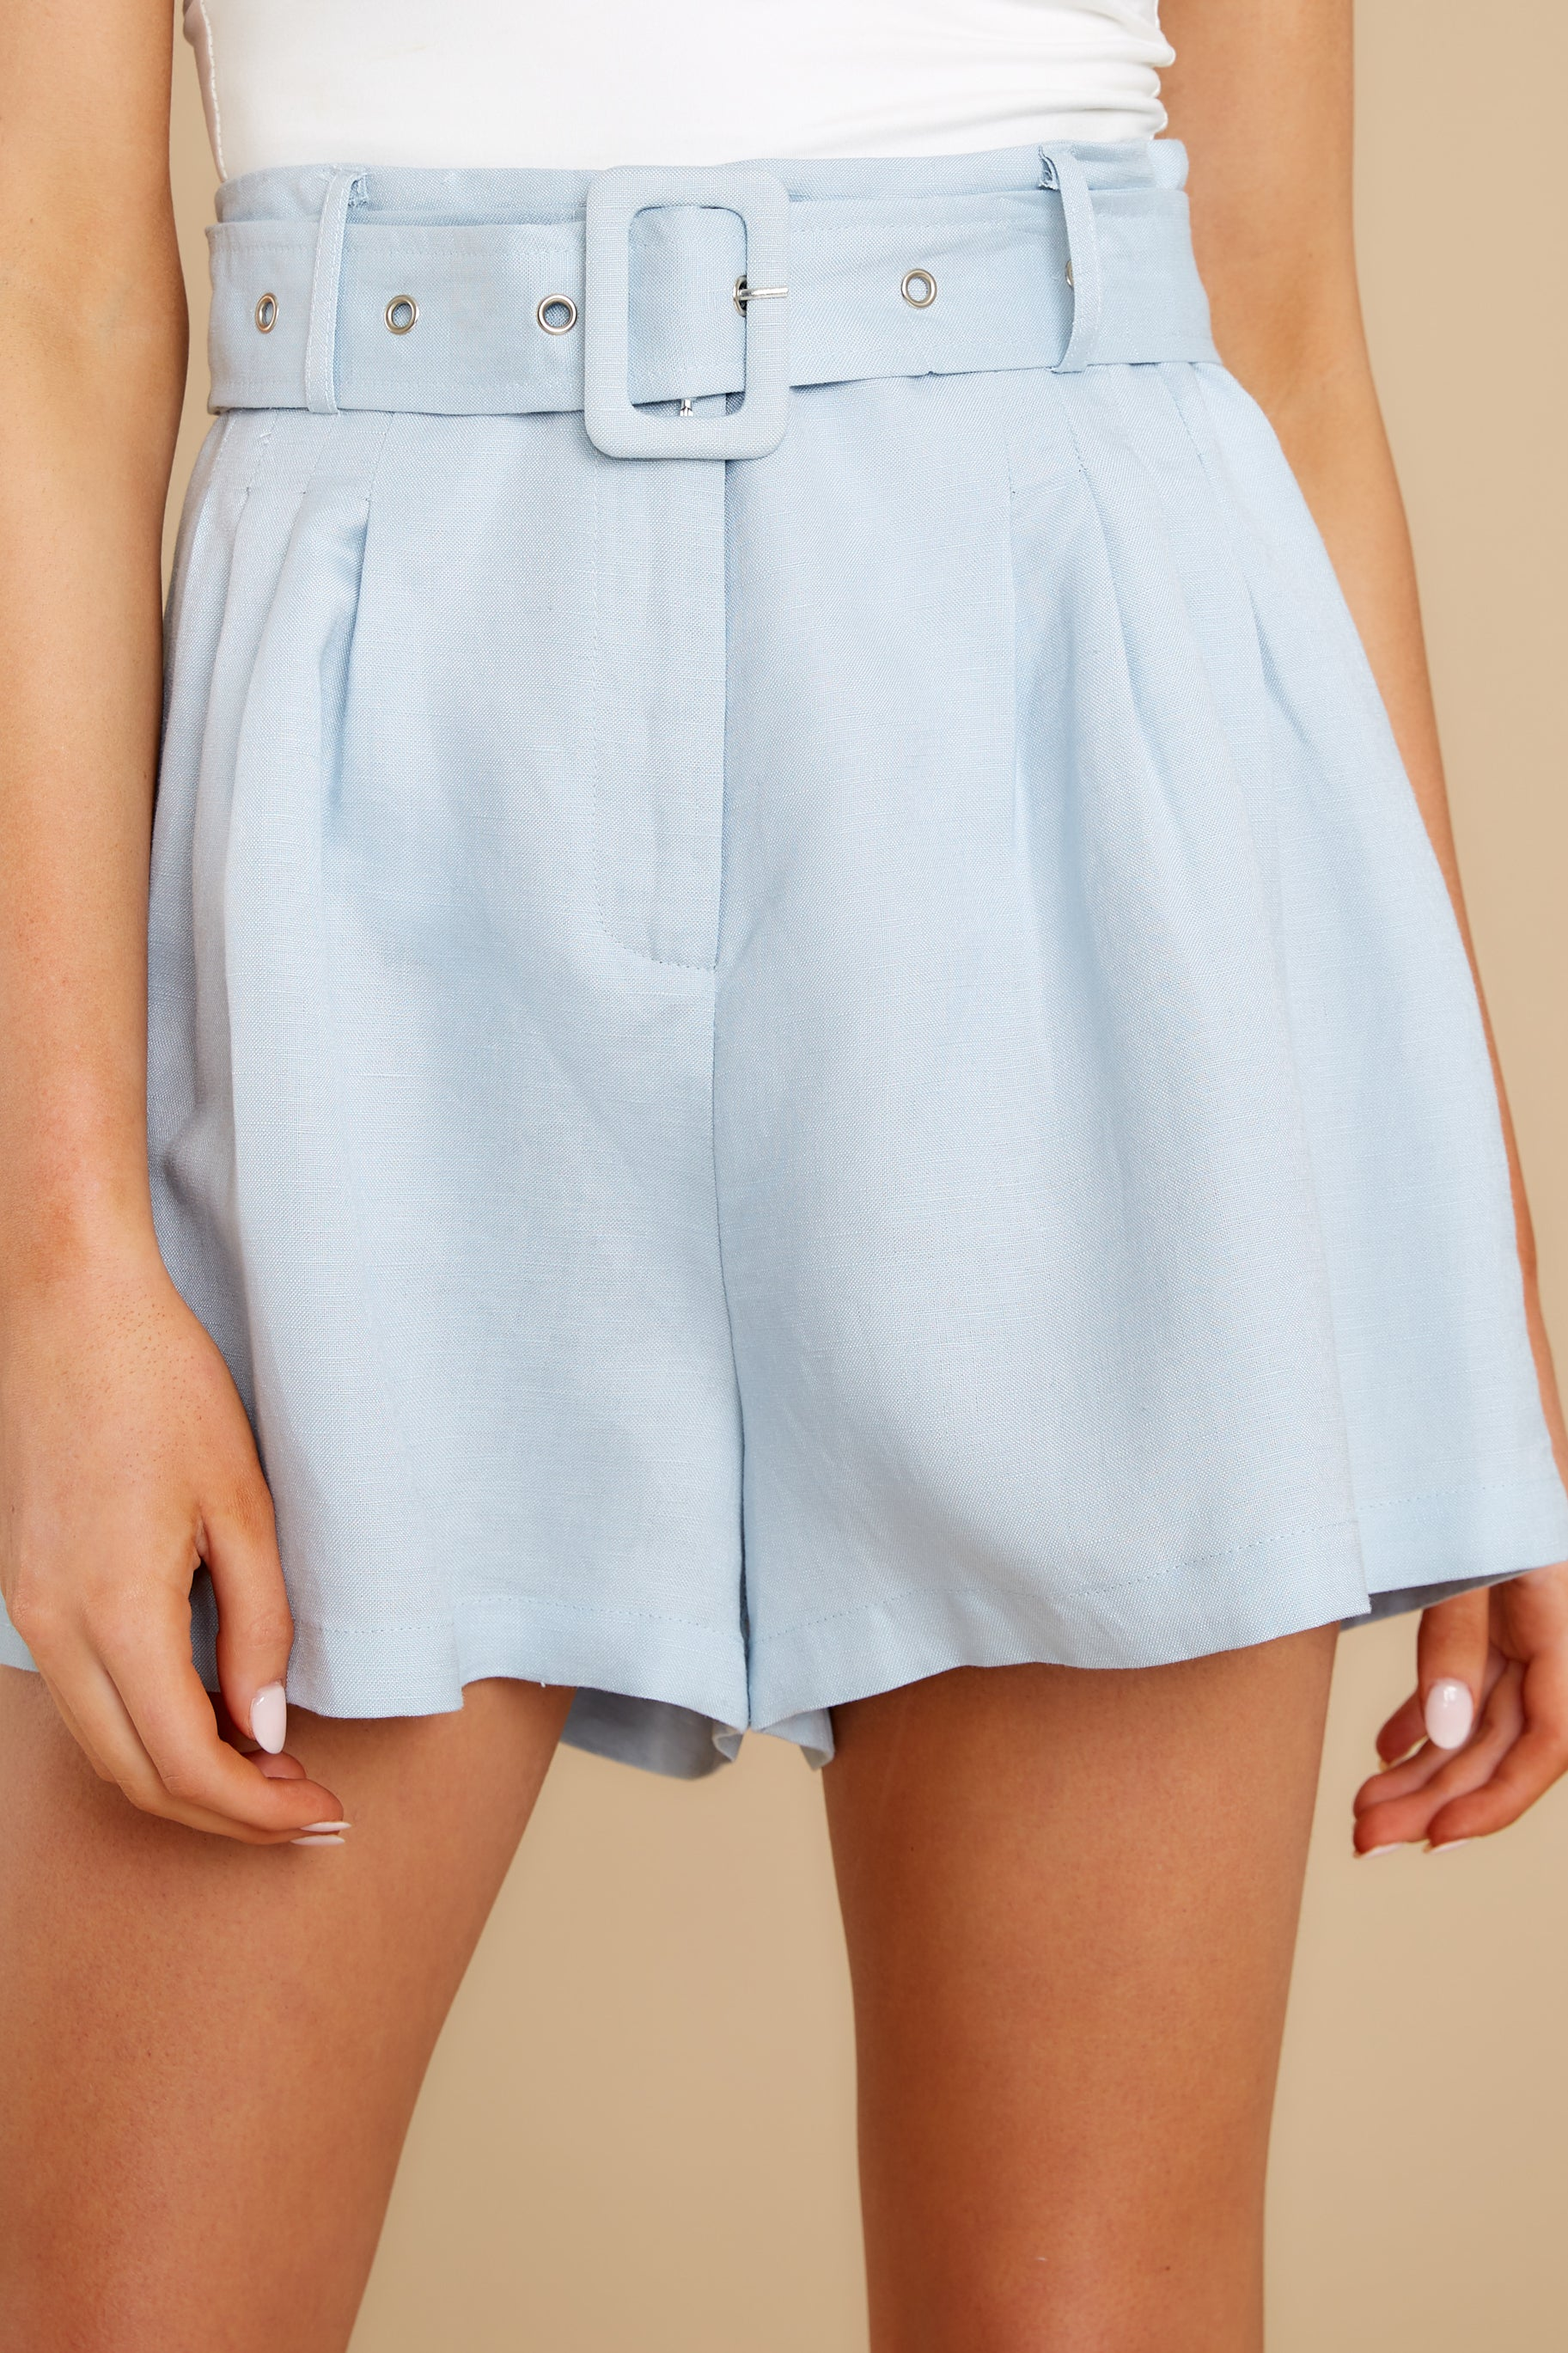 Vintage High Waisted Shorts, Sailor Shorts, Retro Shorts Its Your Fate Light Blue Shorts $48.00 AT vintagedancer.com